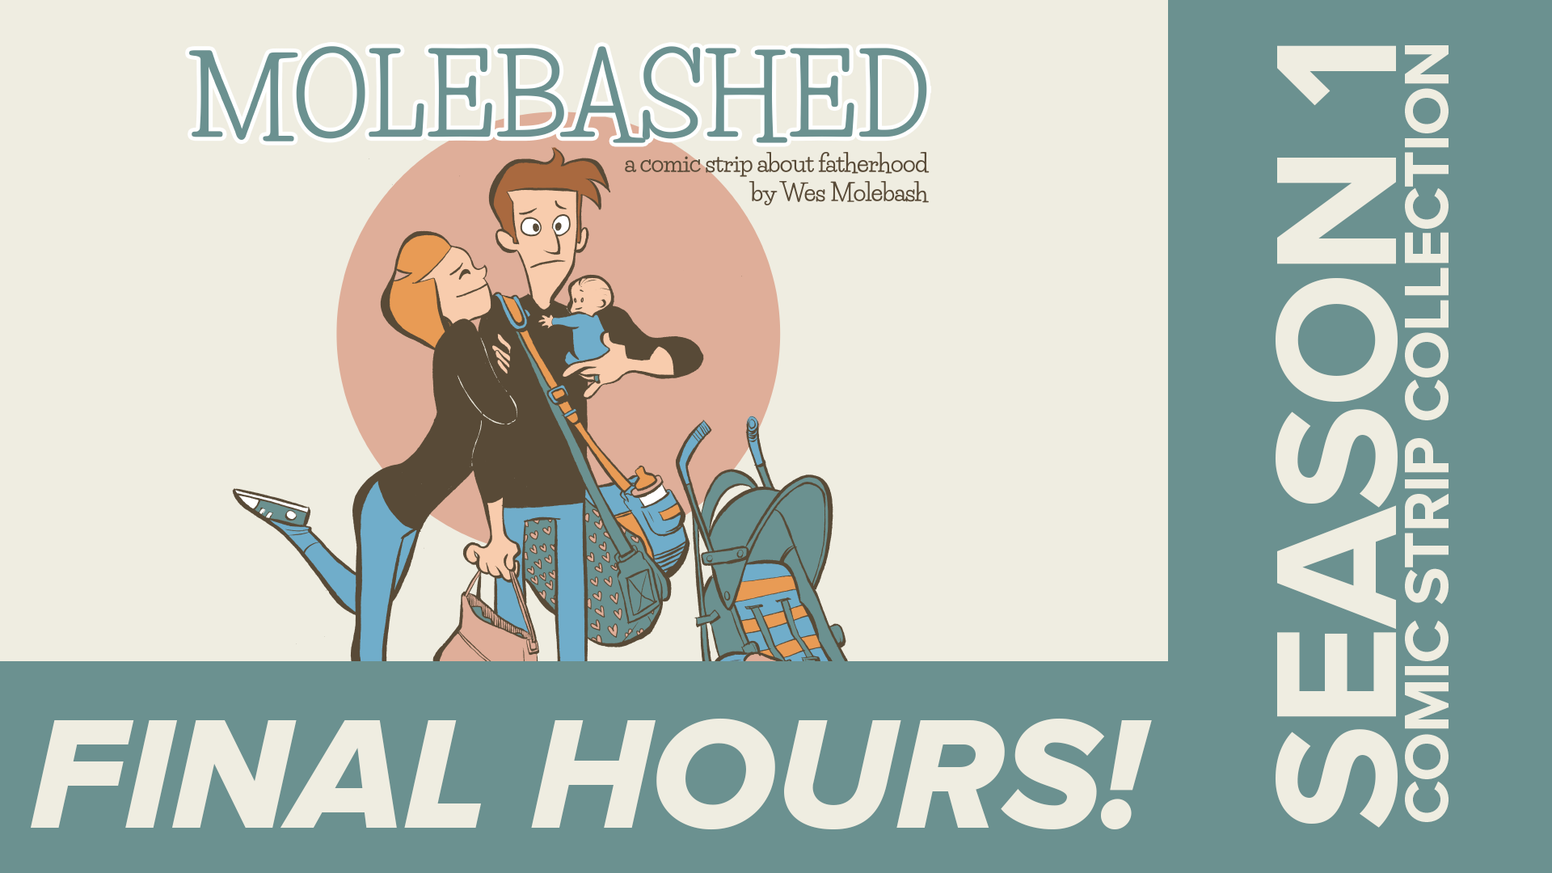 MOLEBASHED is a comic strip about fatherhood by Wes Molebash!